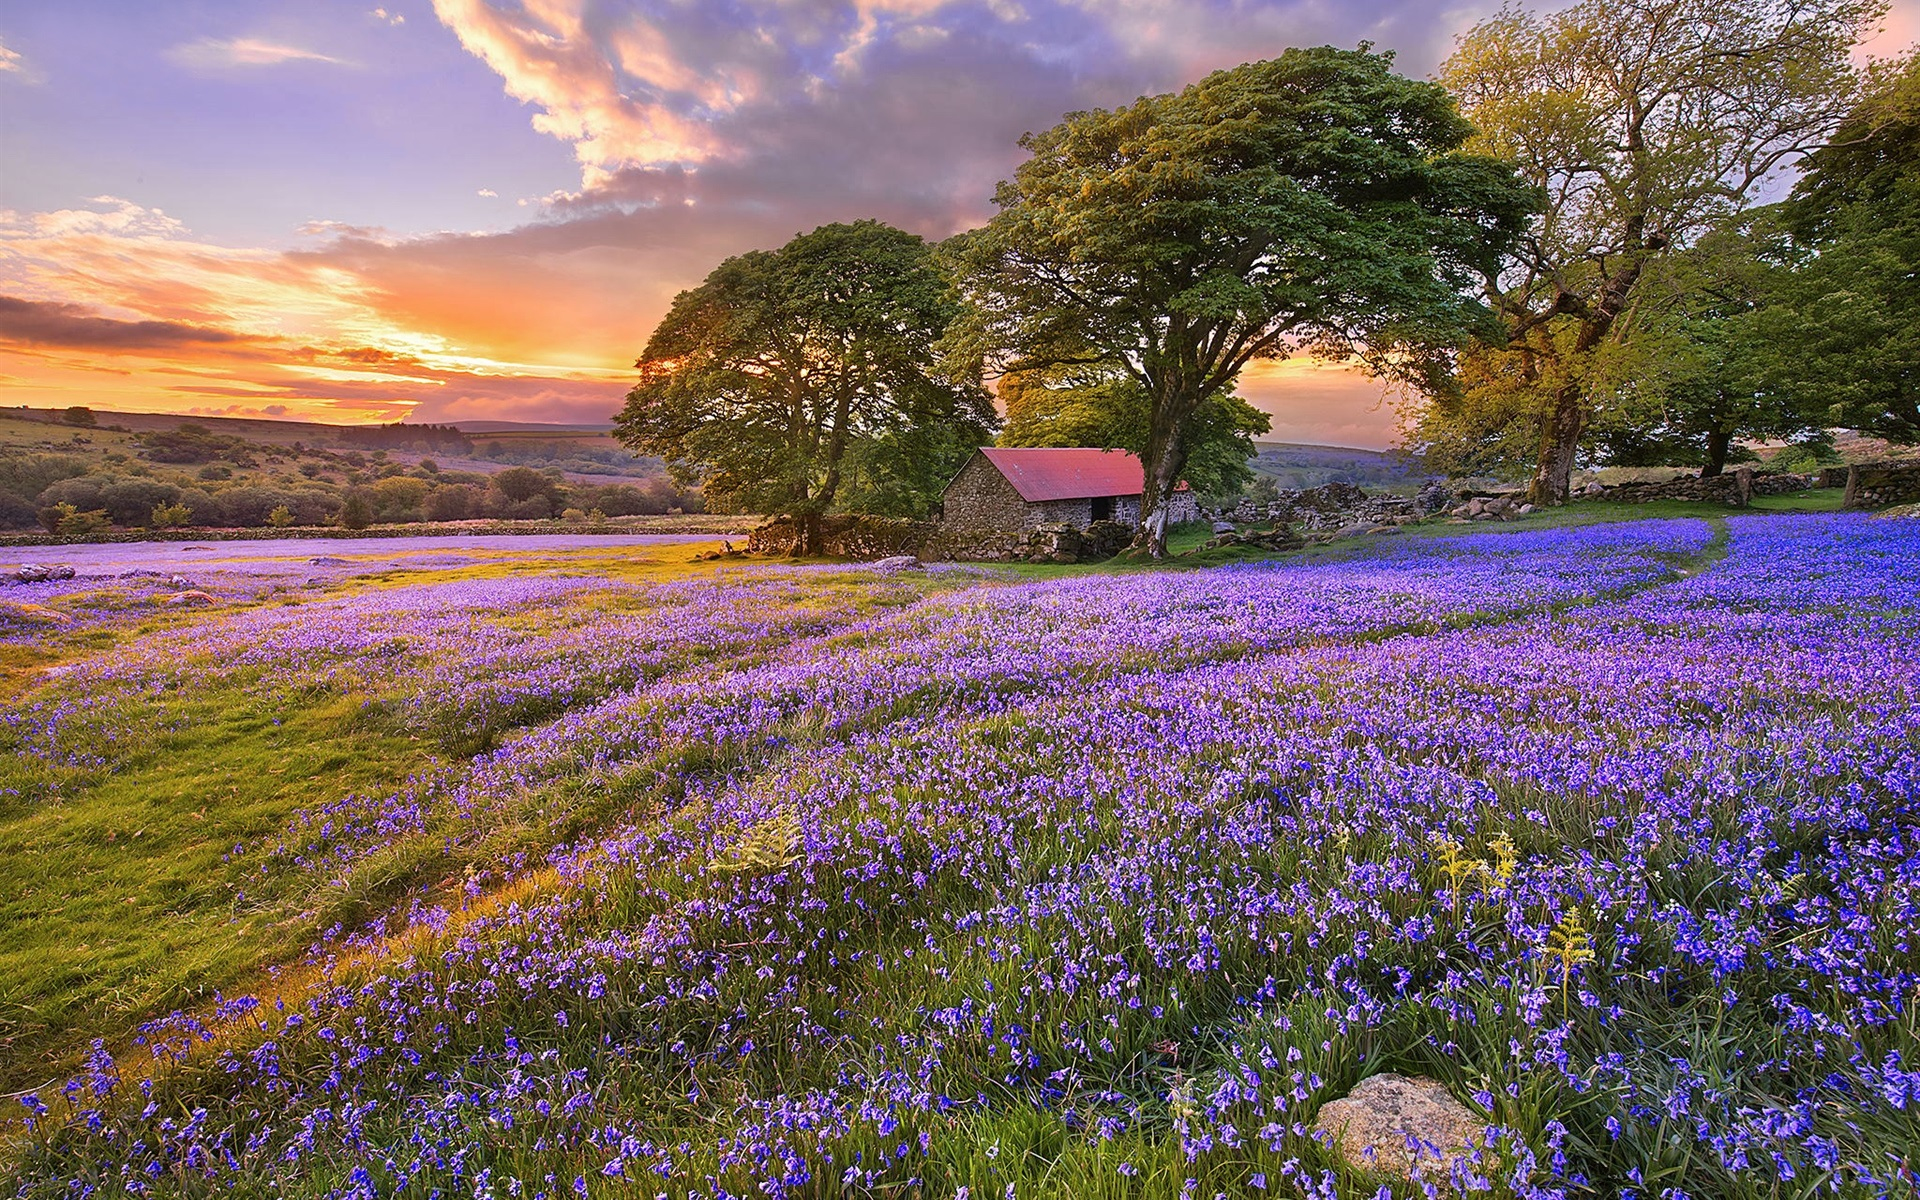 Wallpaper blue flowers trees house sunset 1920x1200 hd picture image download this wallpaper izmirmasajfo